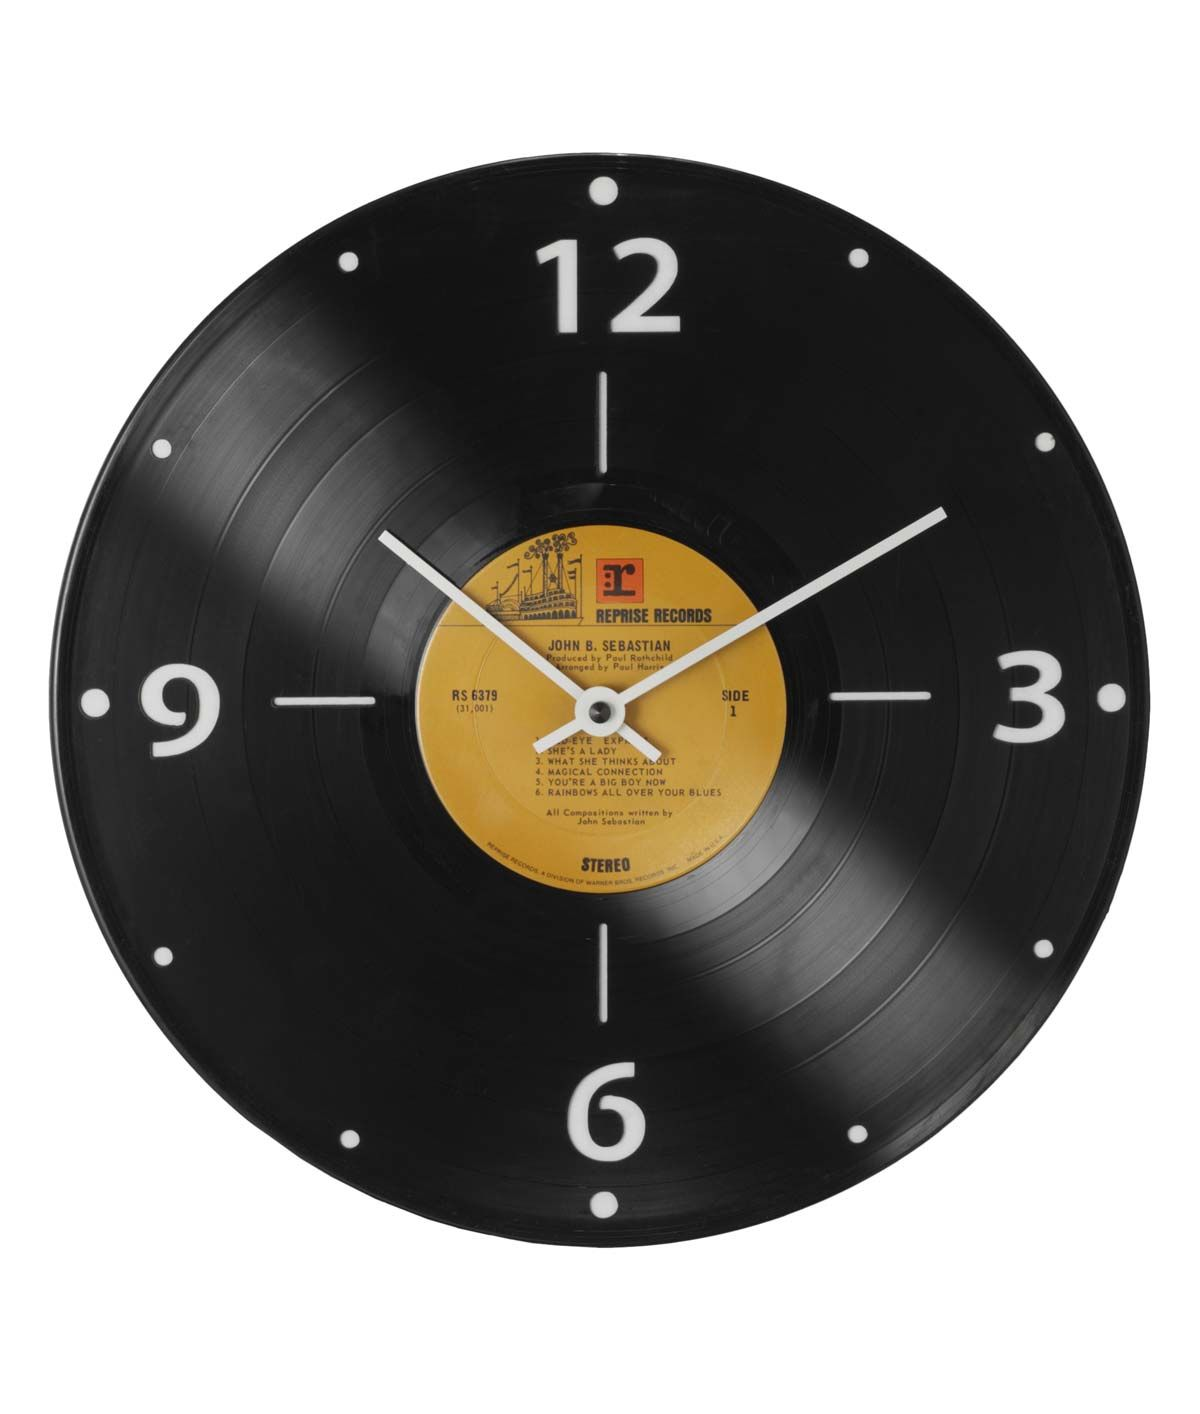 Discos De Vinilo Baratos Para Decorar Record Clock | Deco 70 | Relojes De Pared, Reloj Reciclado